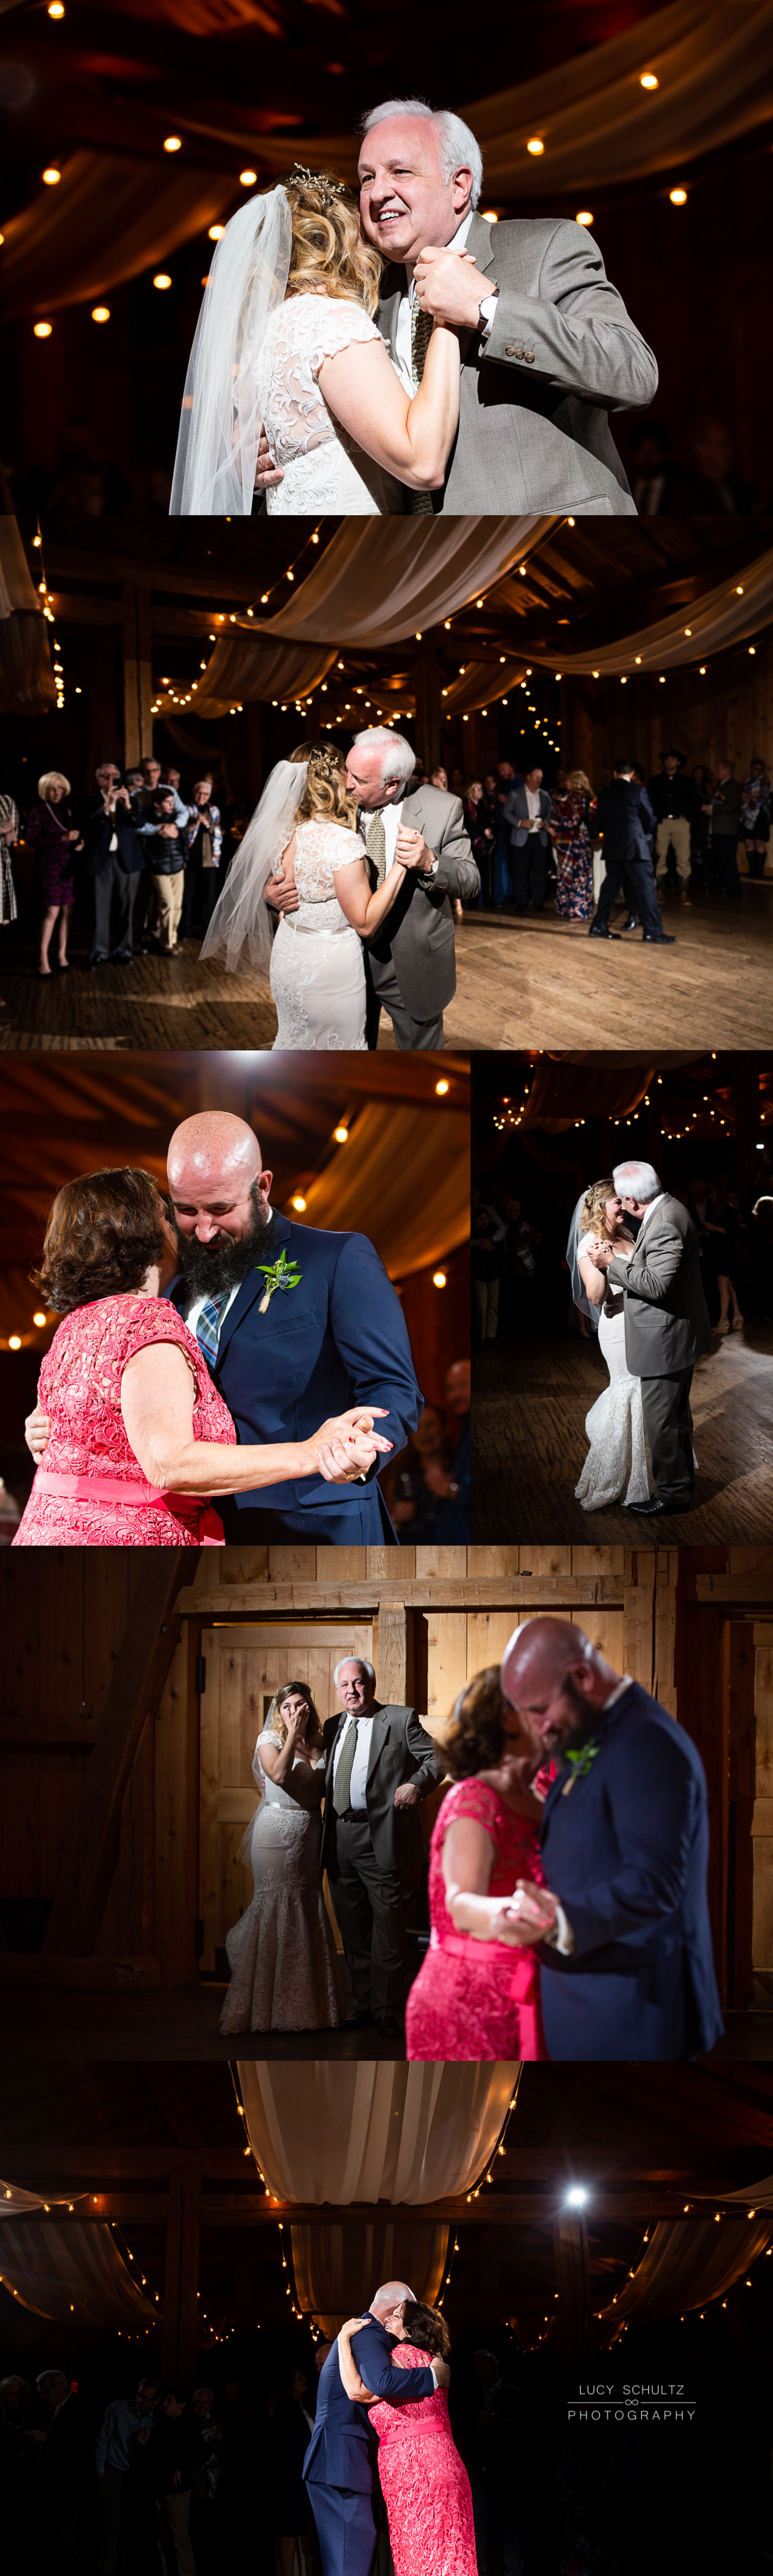 28ParentDancesDevilsThumbRanchWeddingPhotographer